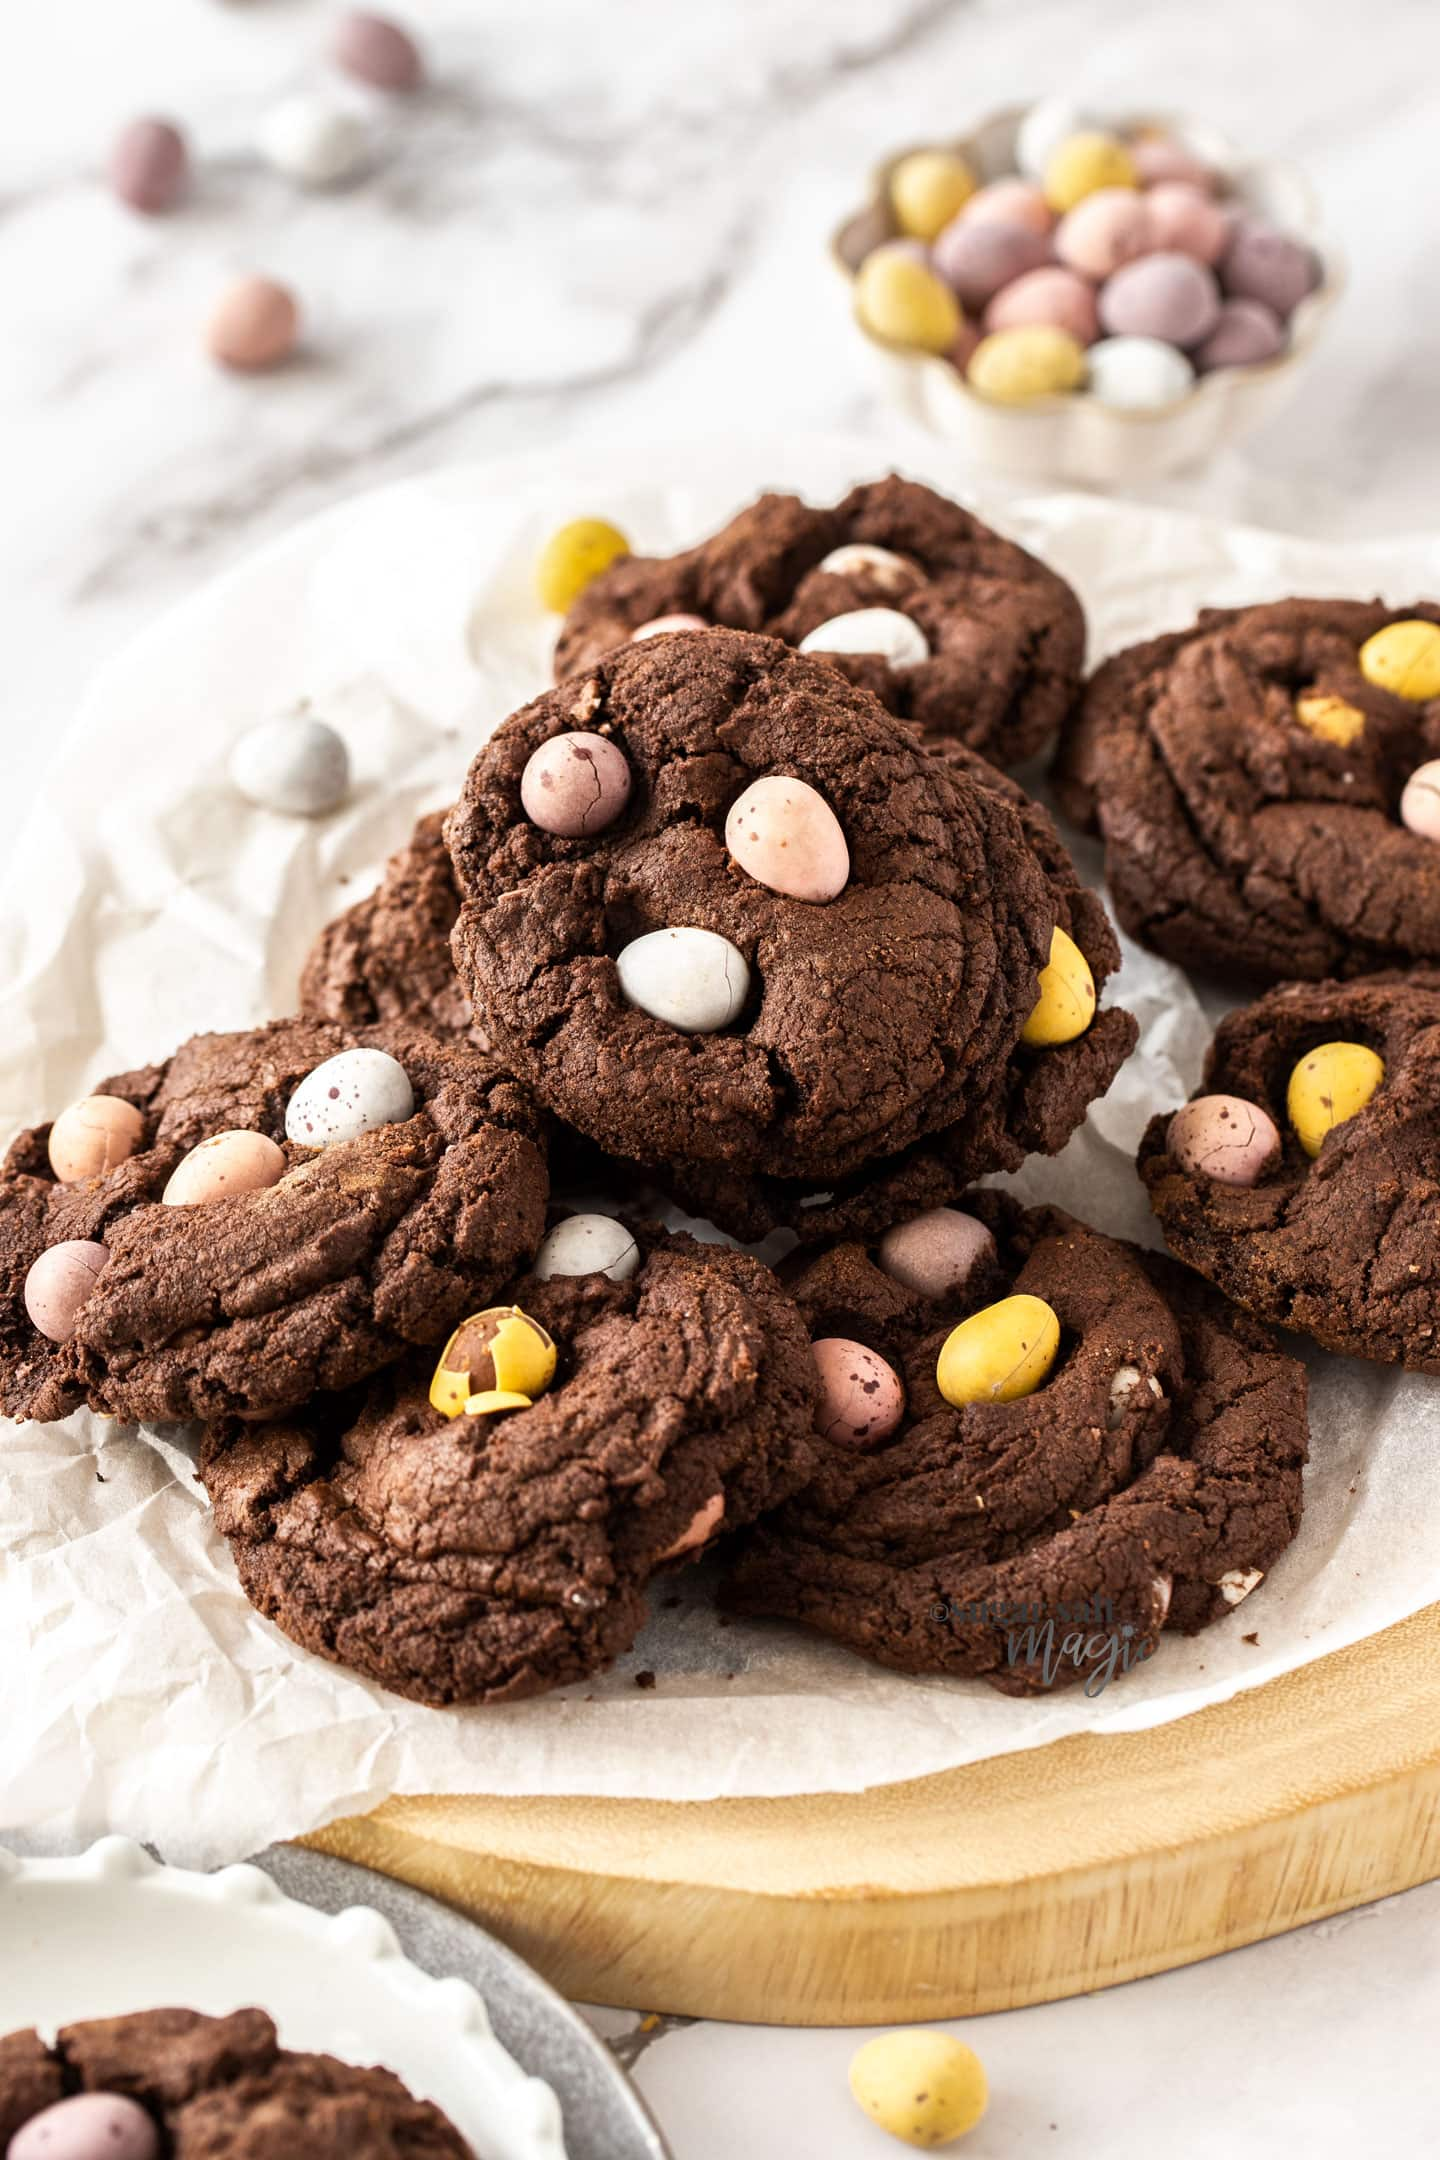 A batch of chocolate cookies on a wooden platter.